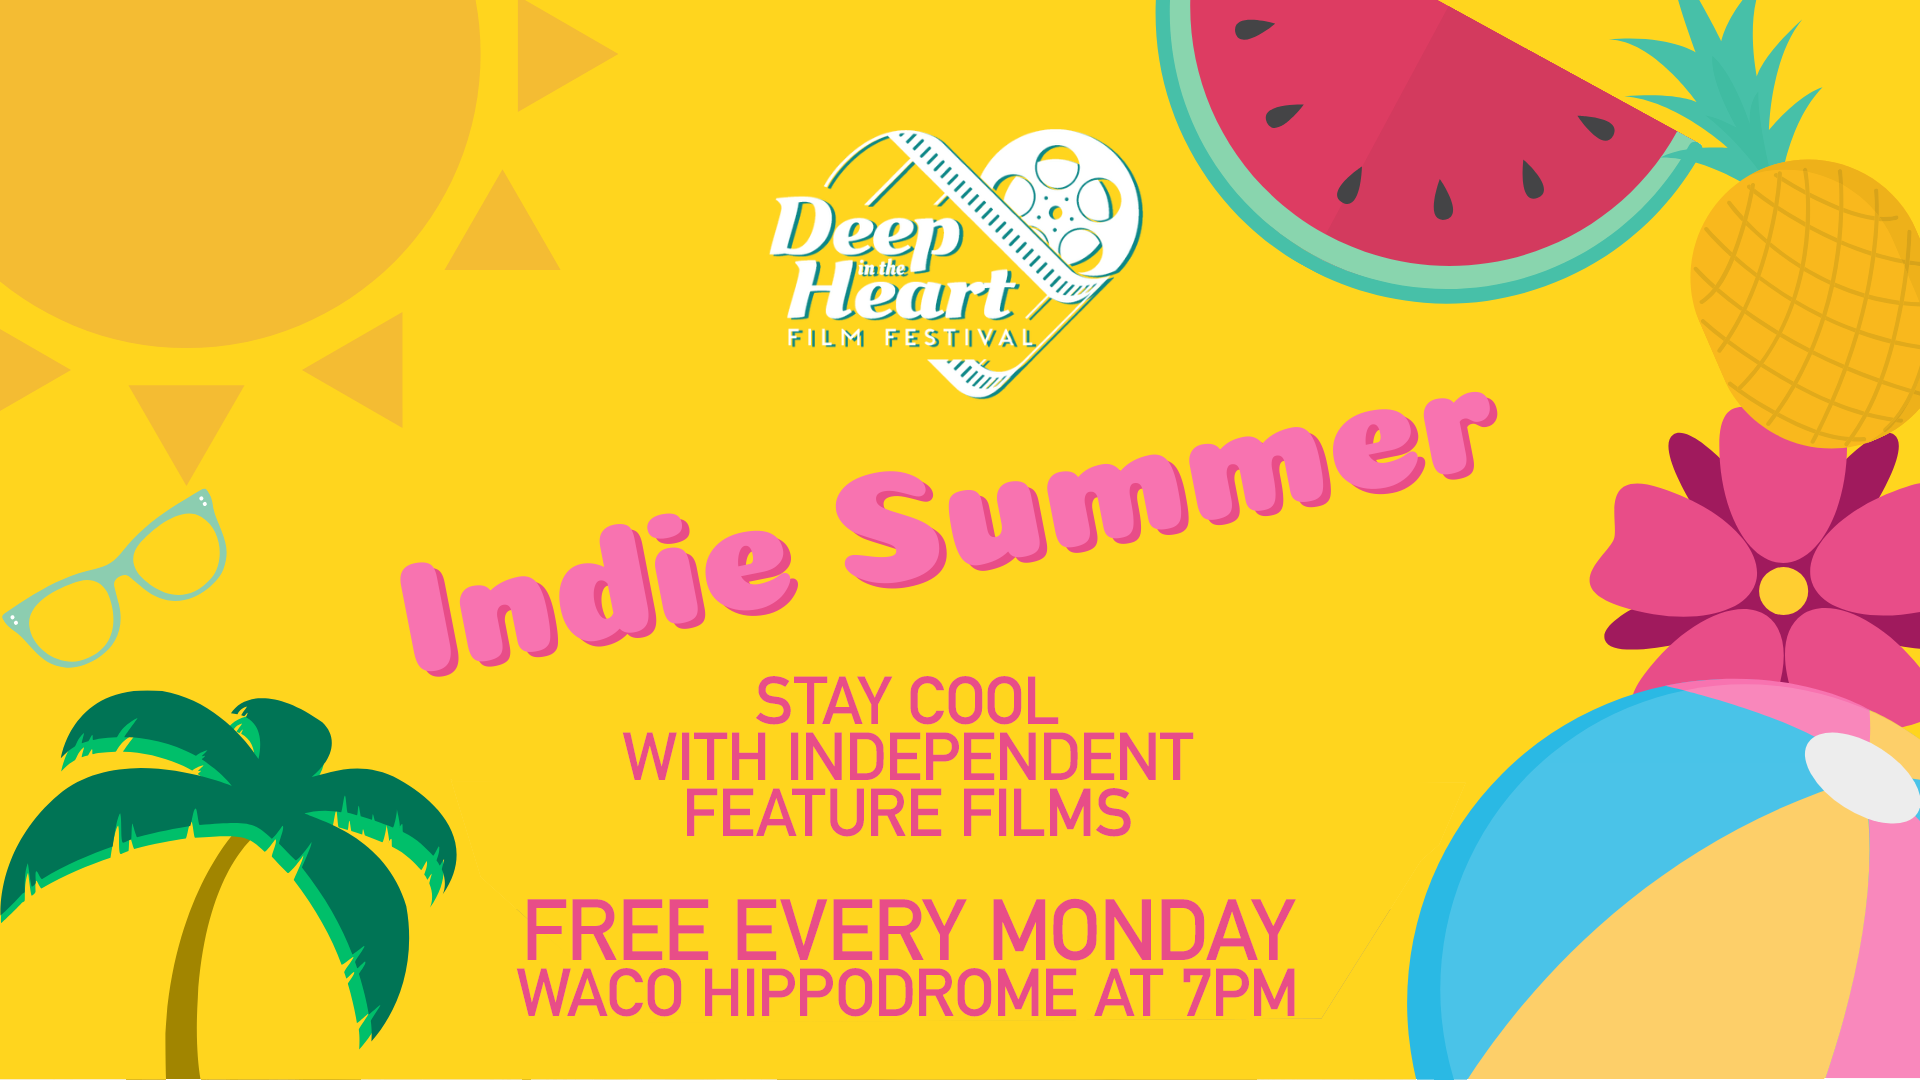 FREE Indie Summer Series - Deep in the Heart Film Festival